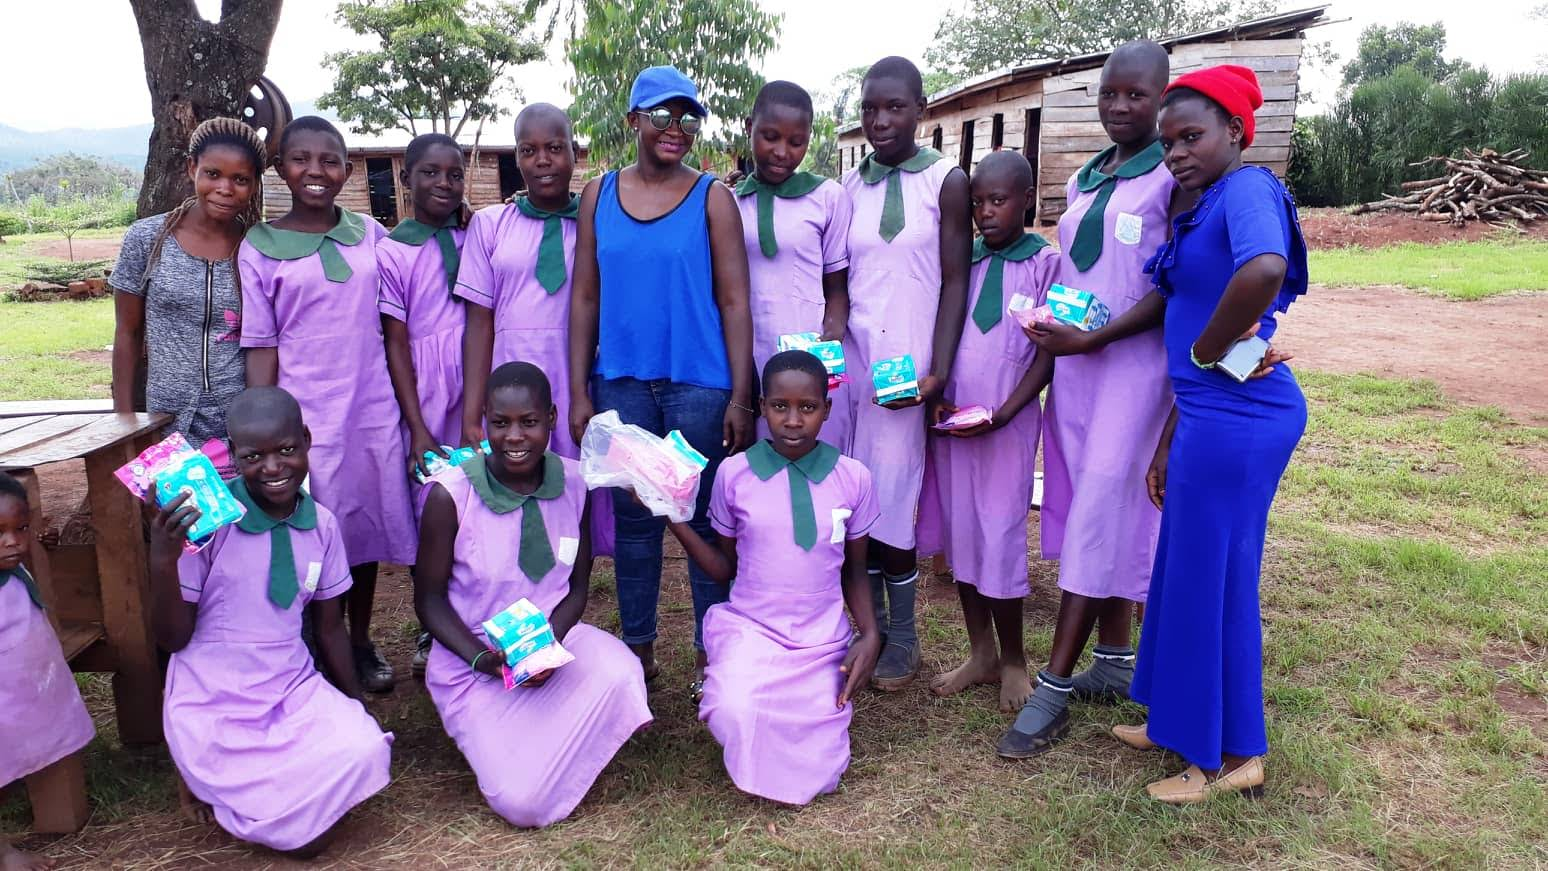 Visit to Starlight Family School to Provide Sanitary Towels